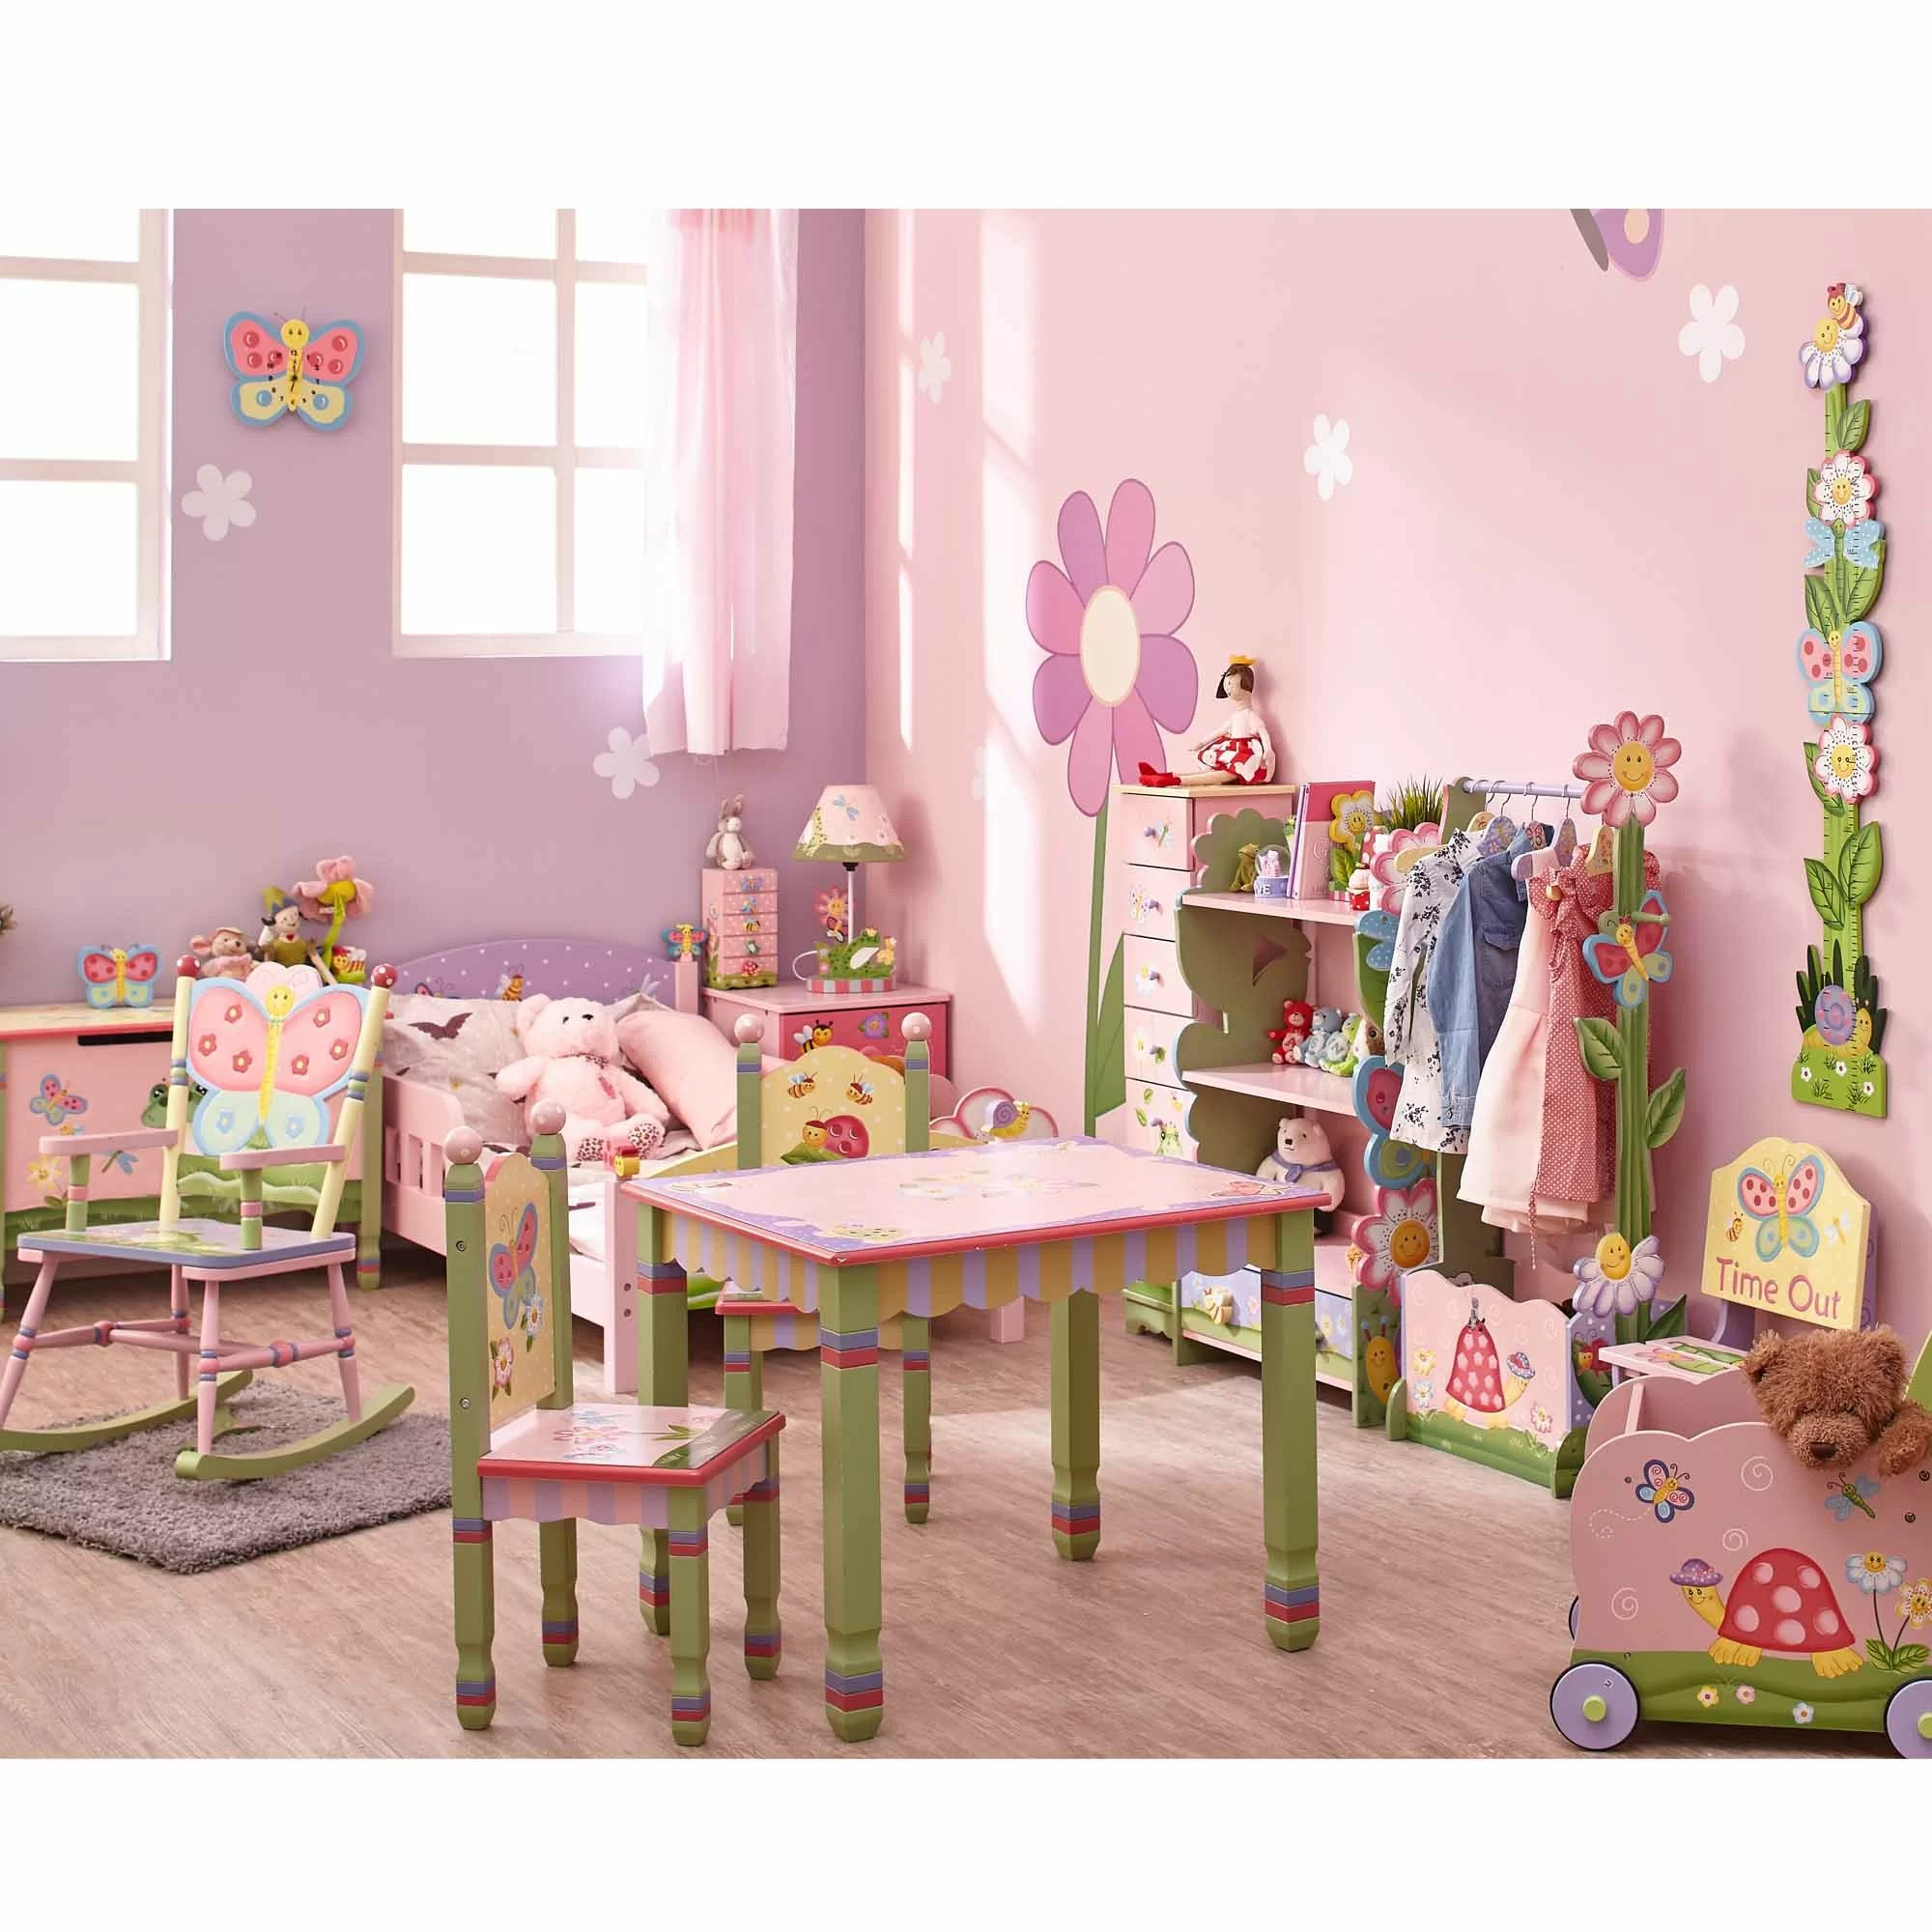 safety 1st 5 piece childrens table and chair set cover hire thurrock fantasy fields magic garden kids 3